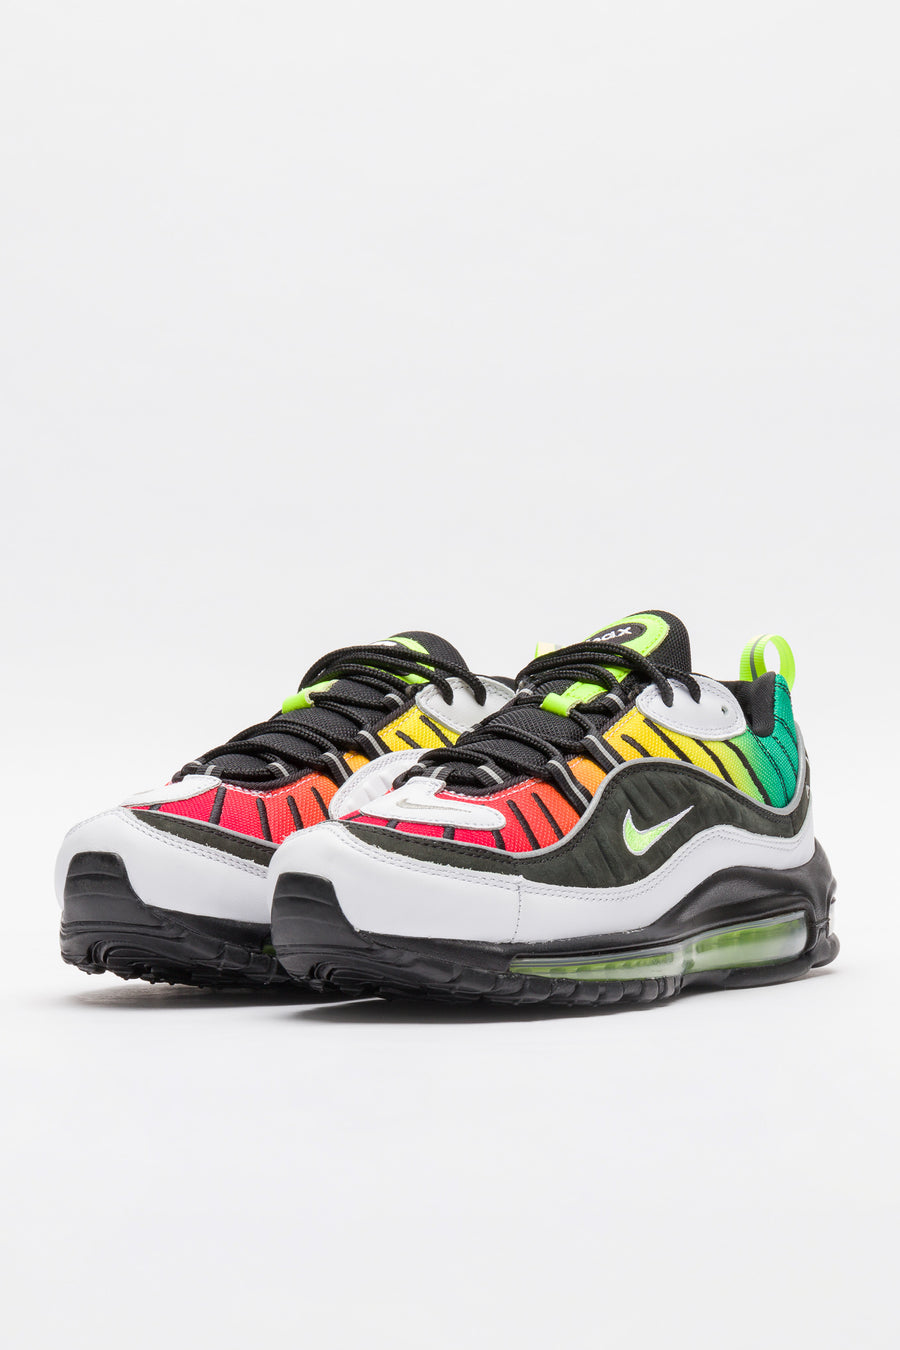 Nike Olivia Kim Air Max 98 in Black/White/Dynamic Yellow - Notre